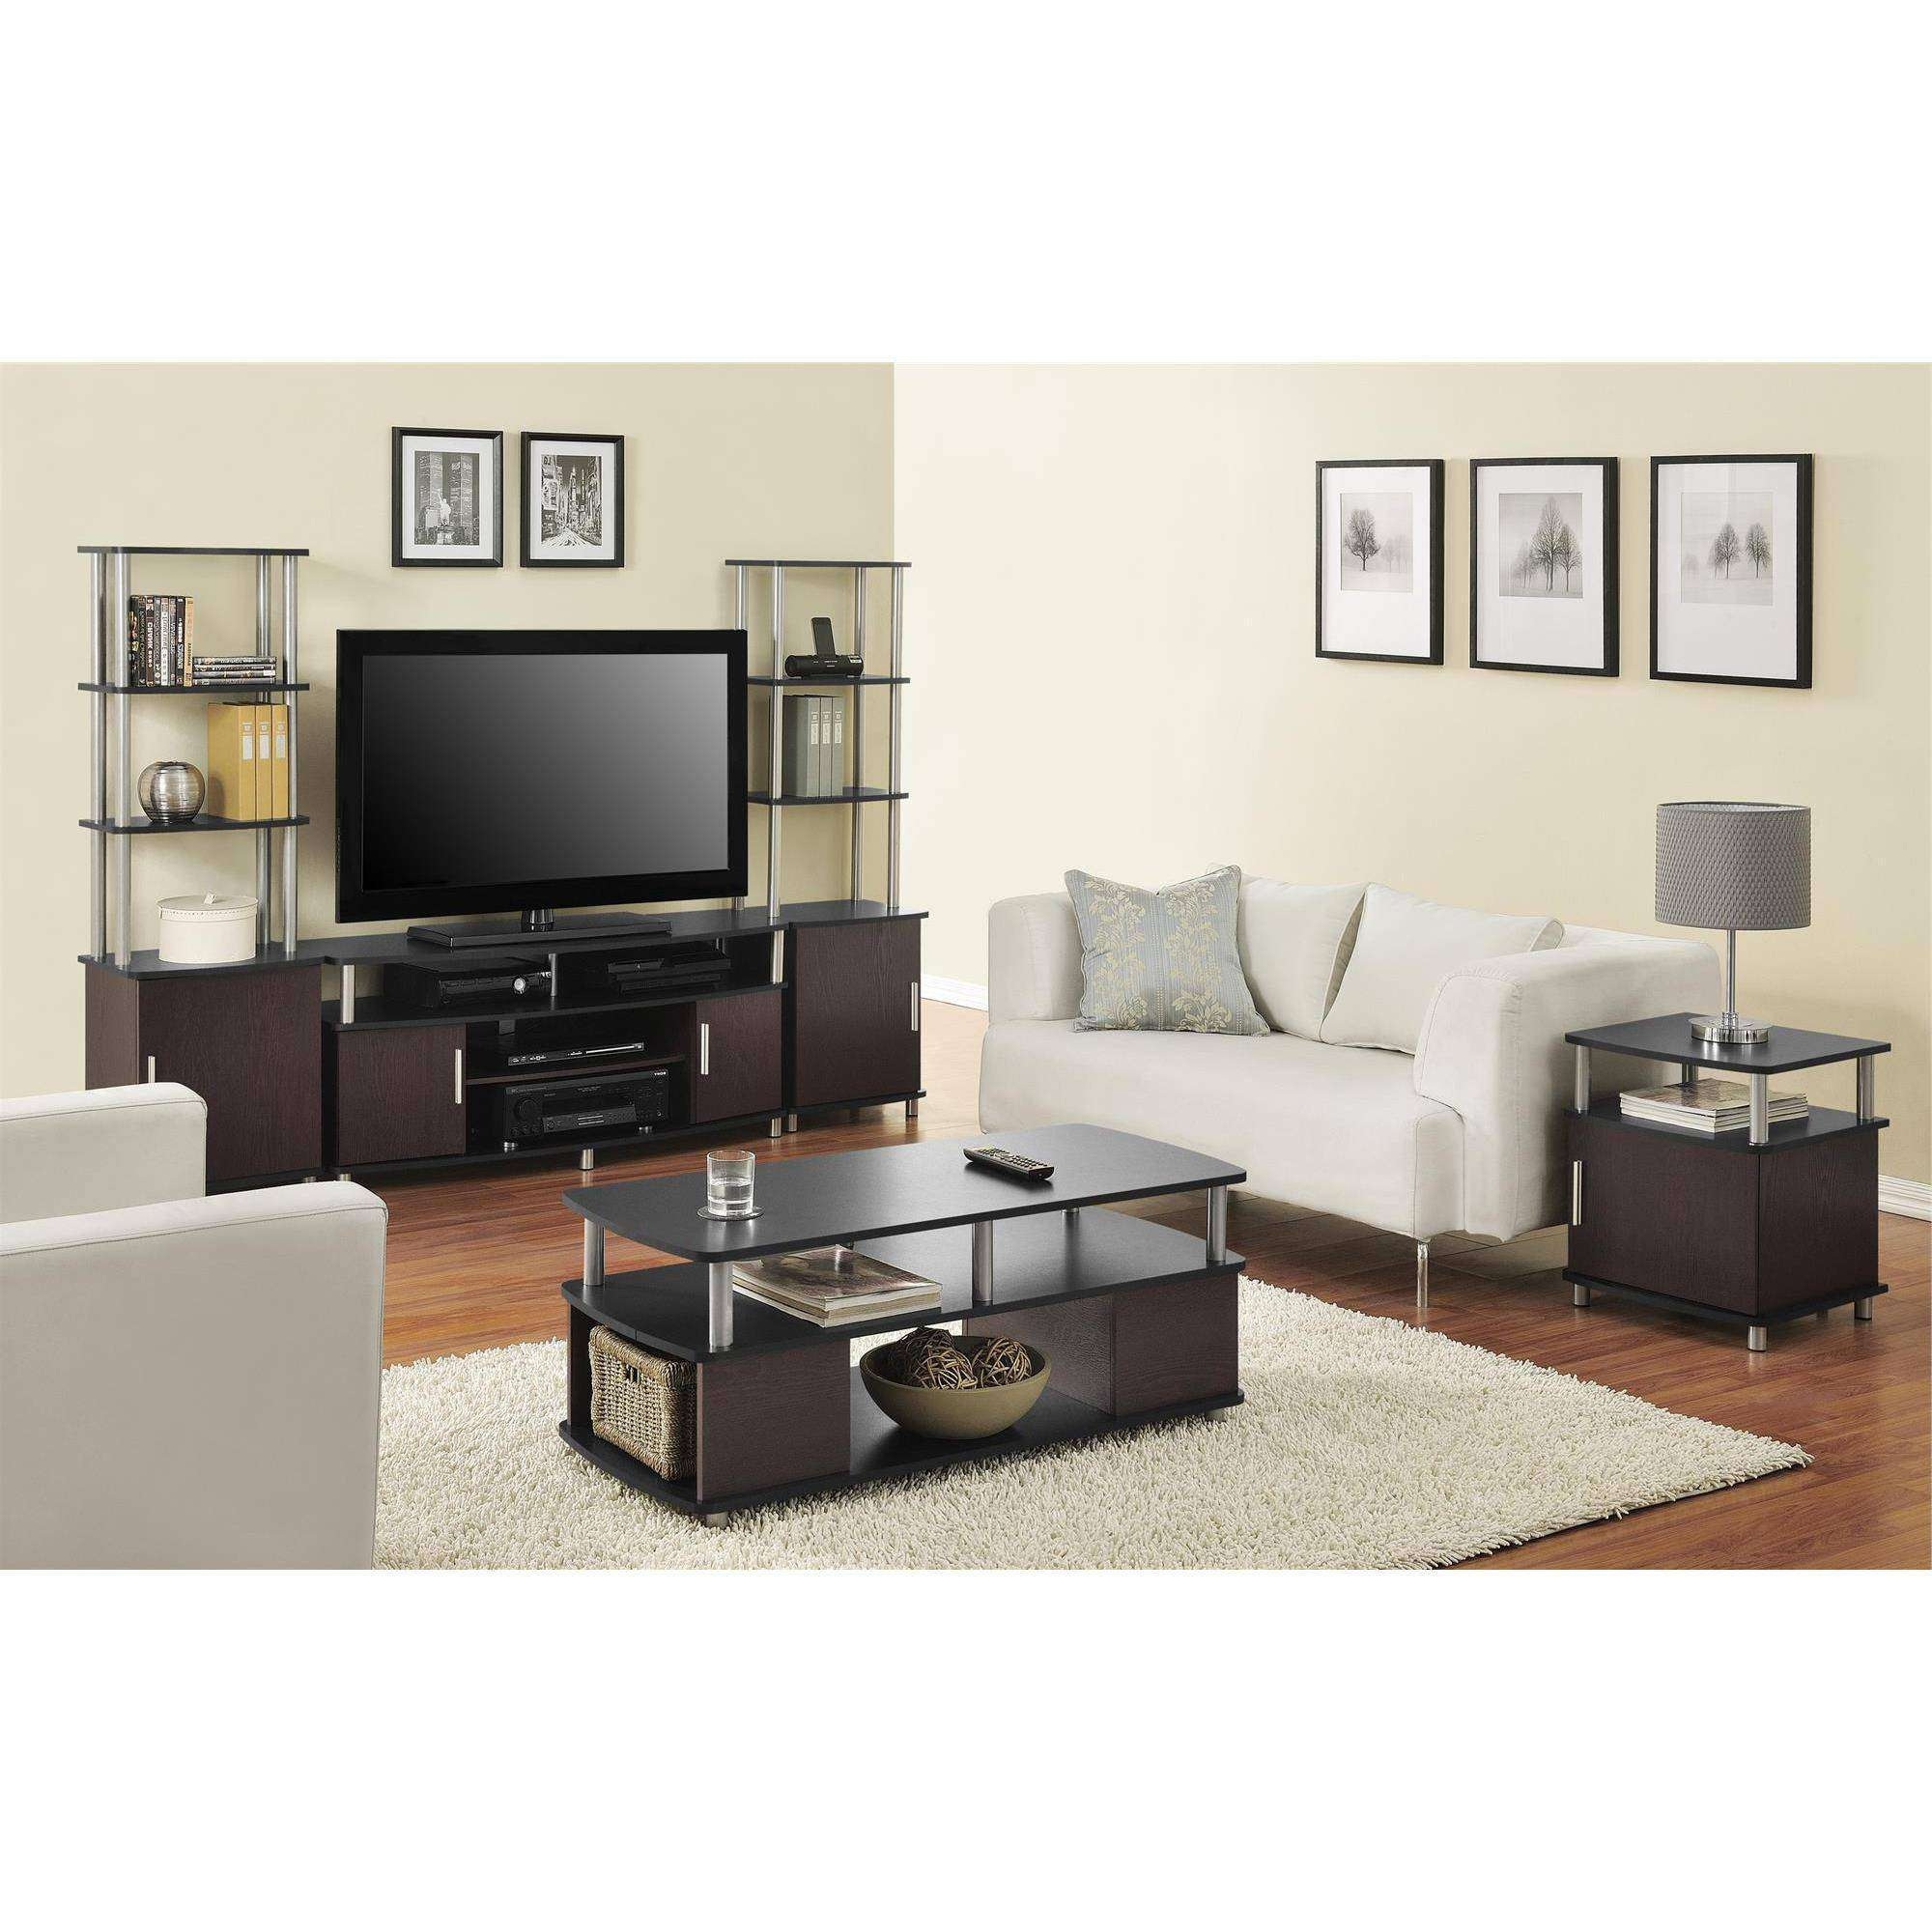 Tv : Memorable Coffee Table And Tv Stand Set Uk Perfect Coffee Within Coffee Tables And Tv Stands (View 19 of 20)